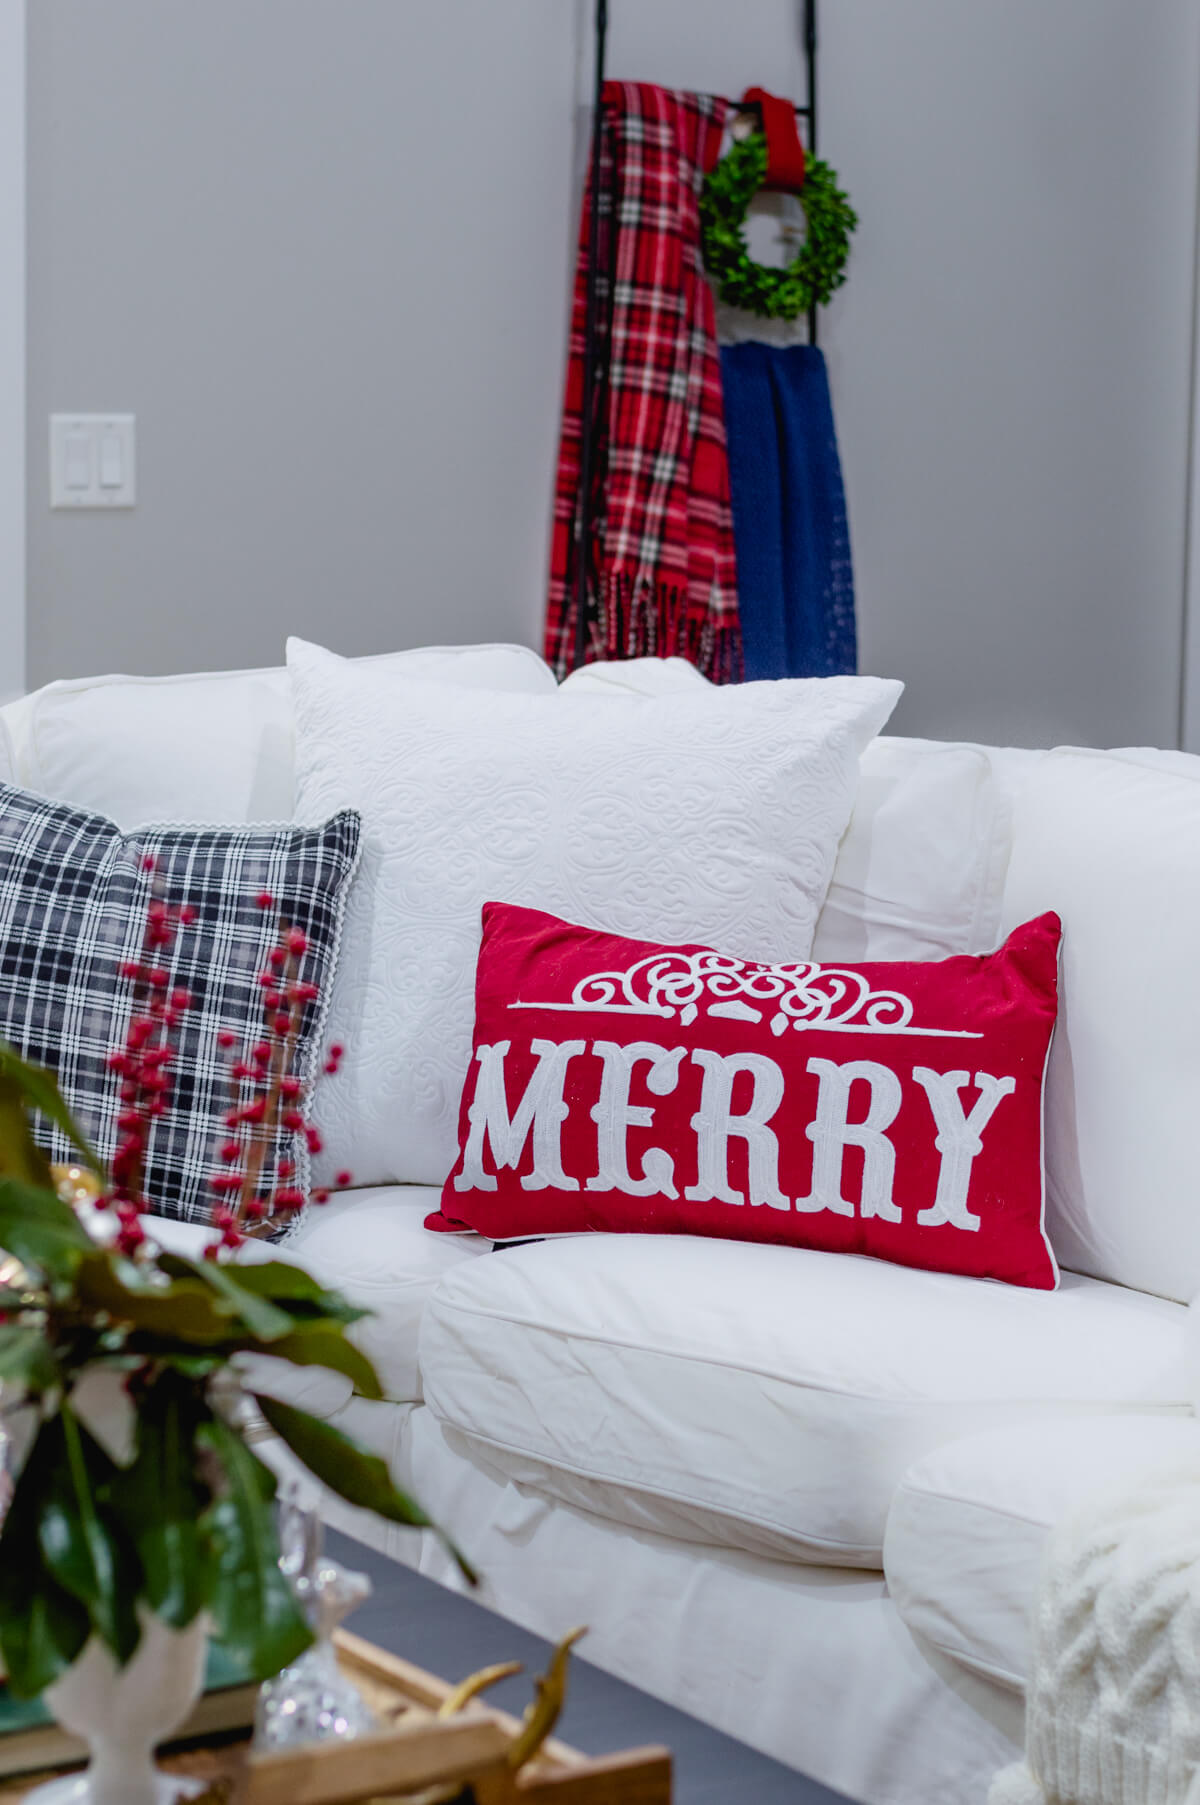 merry-christmas-pillows